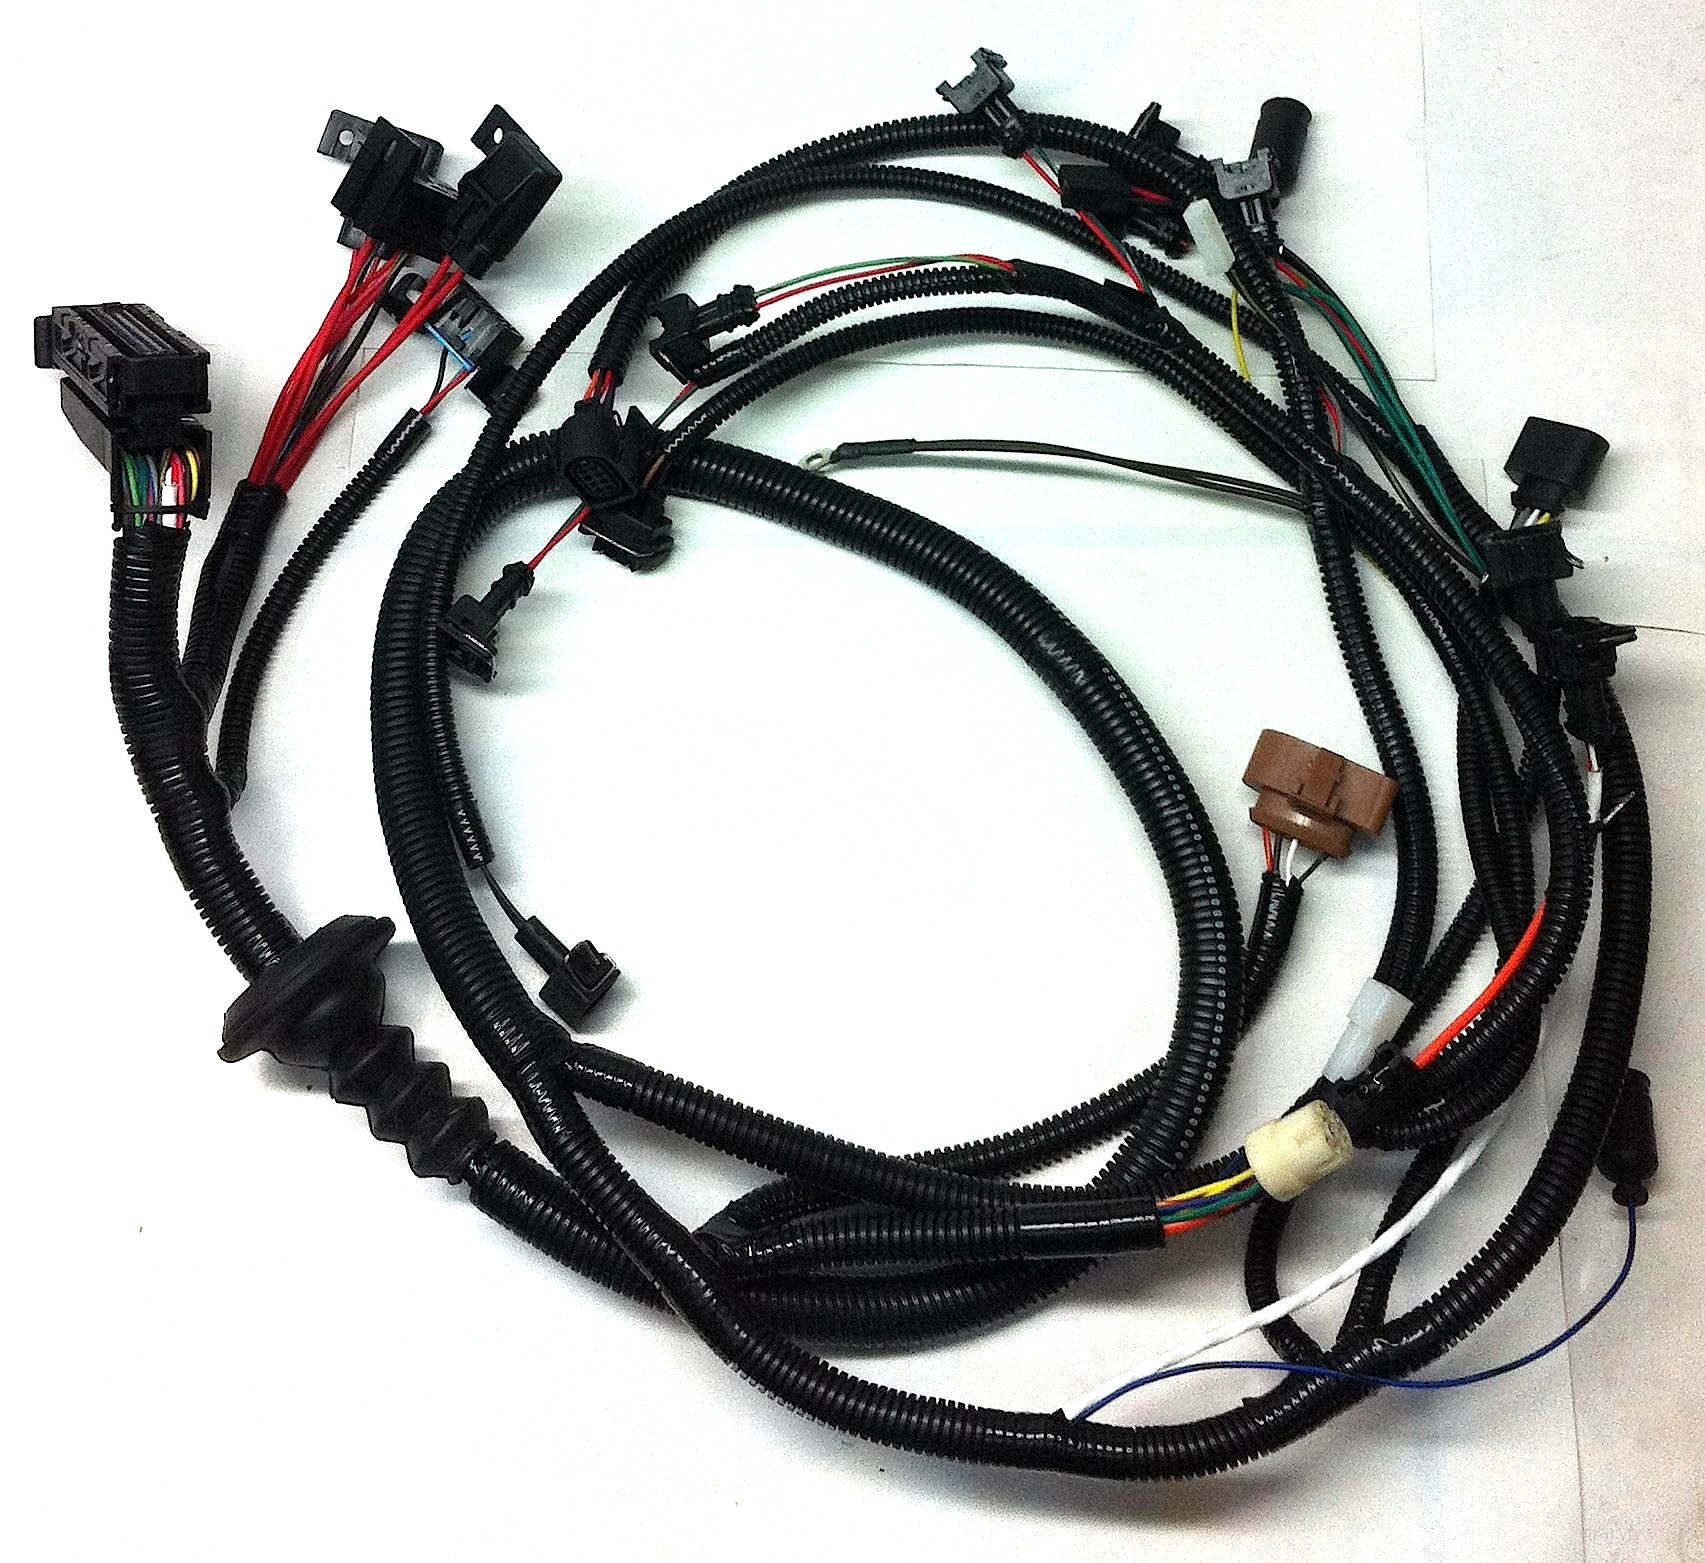 Wiring_Harness_2LR 2lr tiico conversion wiring harness foreign auto & supply, inc wiring harness engine at fashall.co